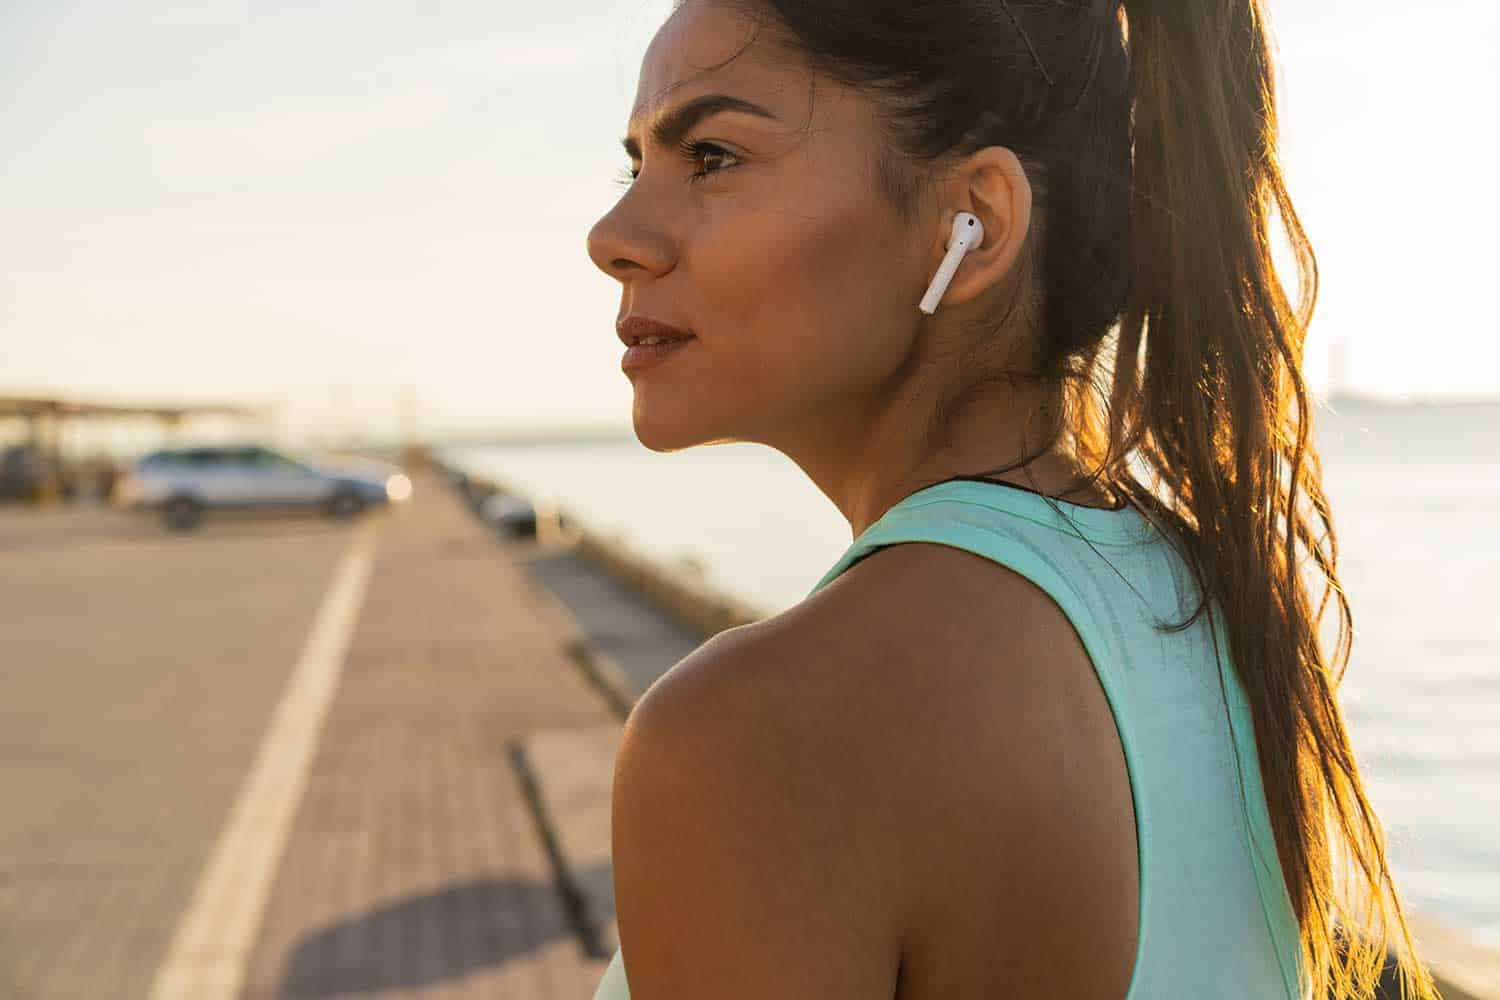 Tired fitness woman sweating taking a break listening to music on phone after difficult training